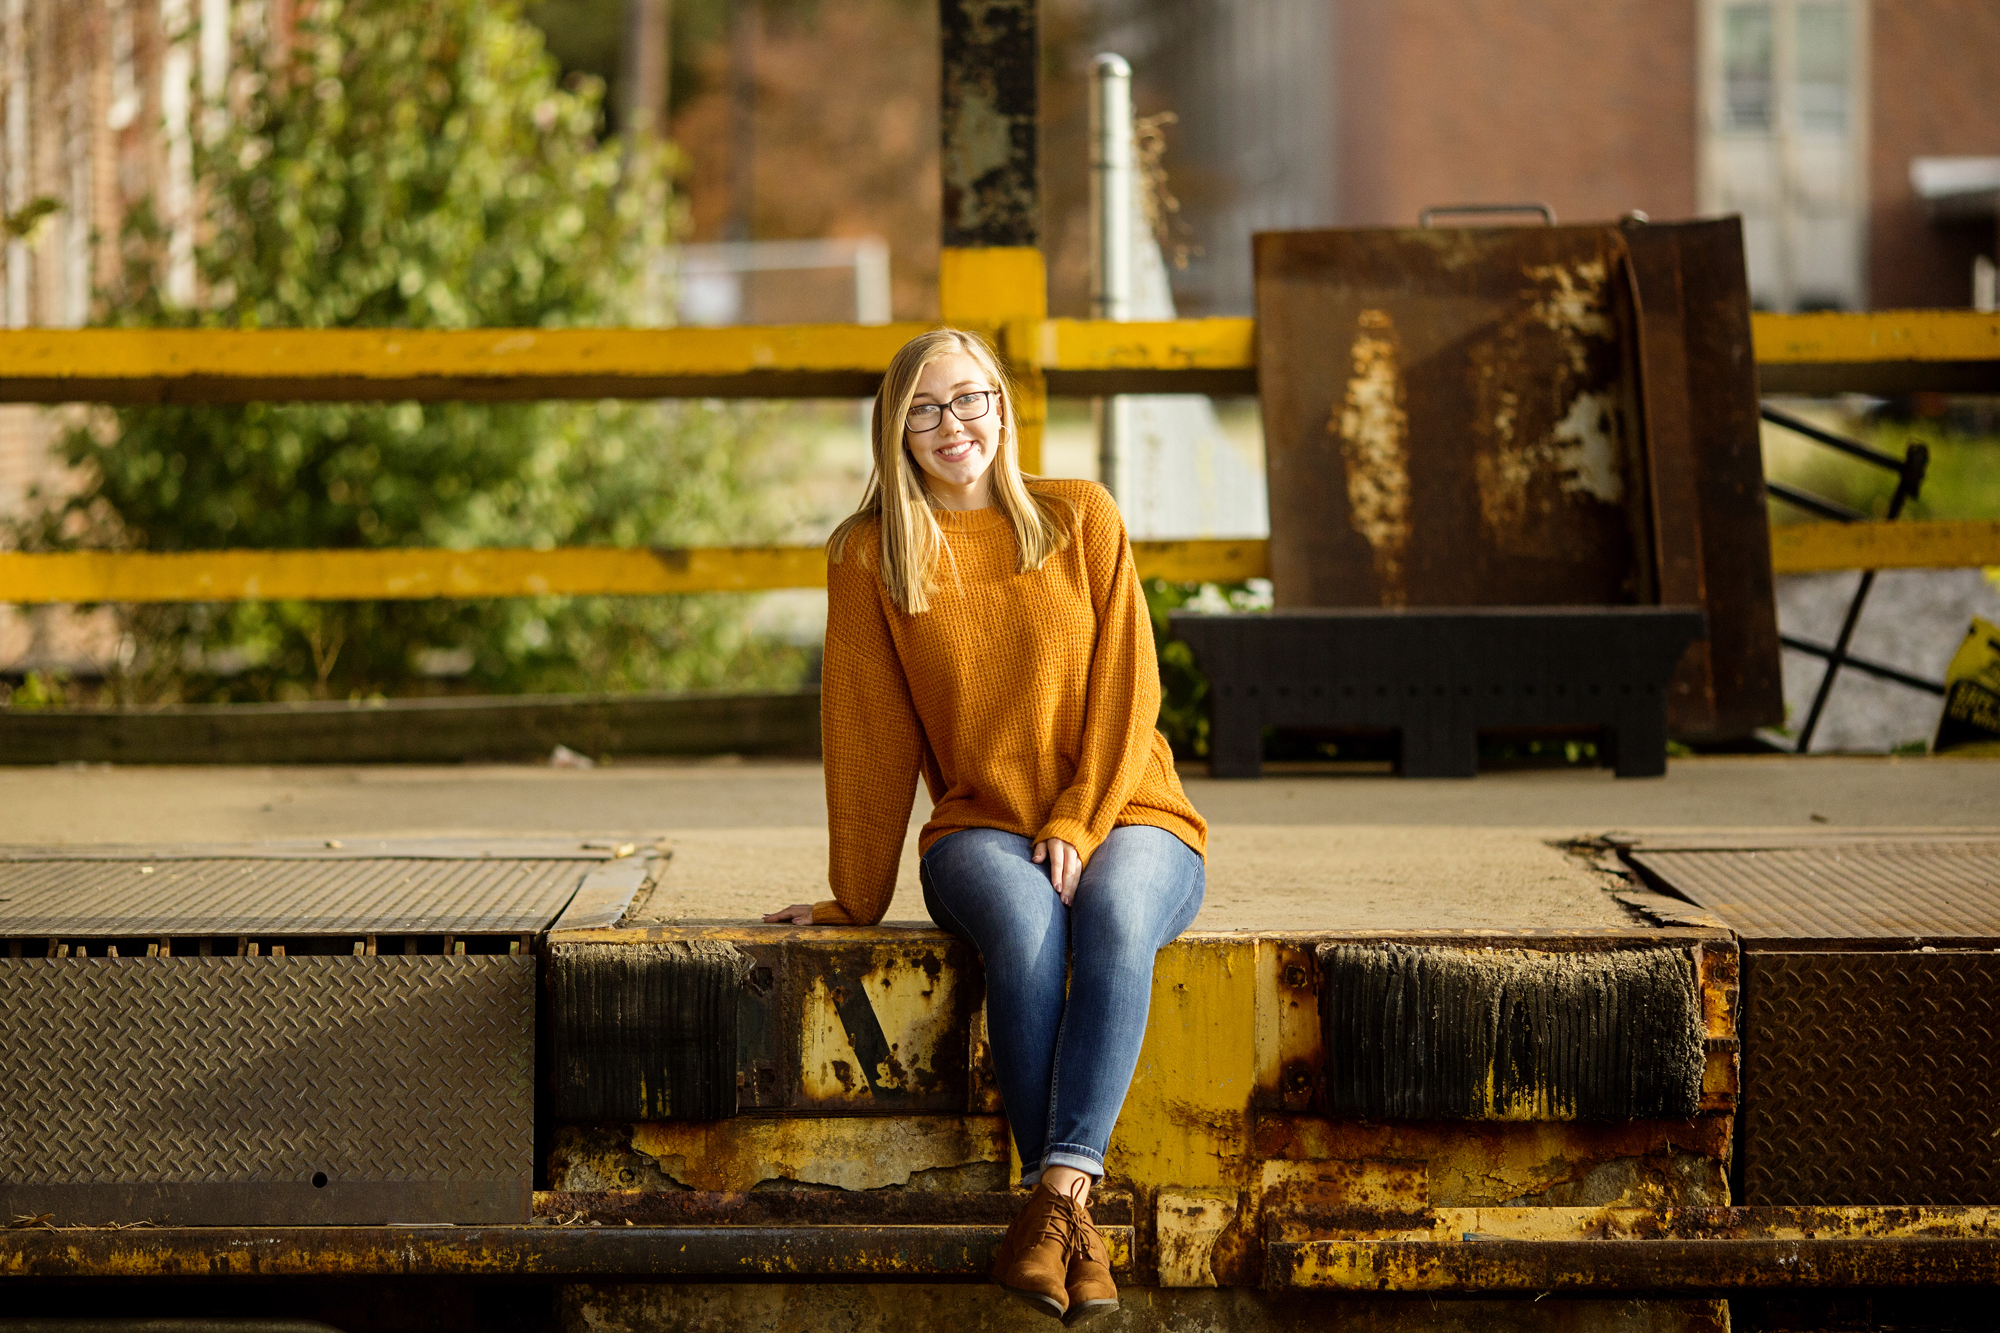 Seriously_Sabrina_Photography_Lexington_Kentucky_High_School_Senior_Camryn_McManis_1.jpg